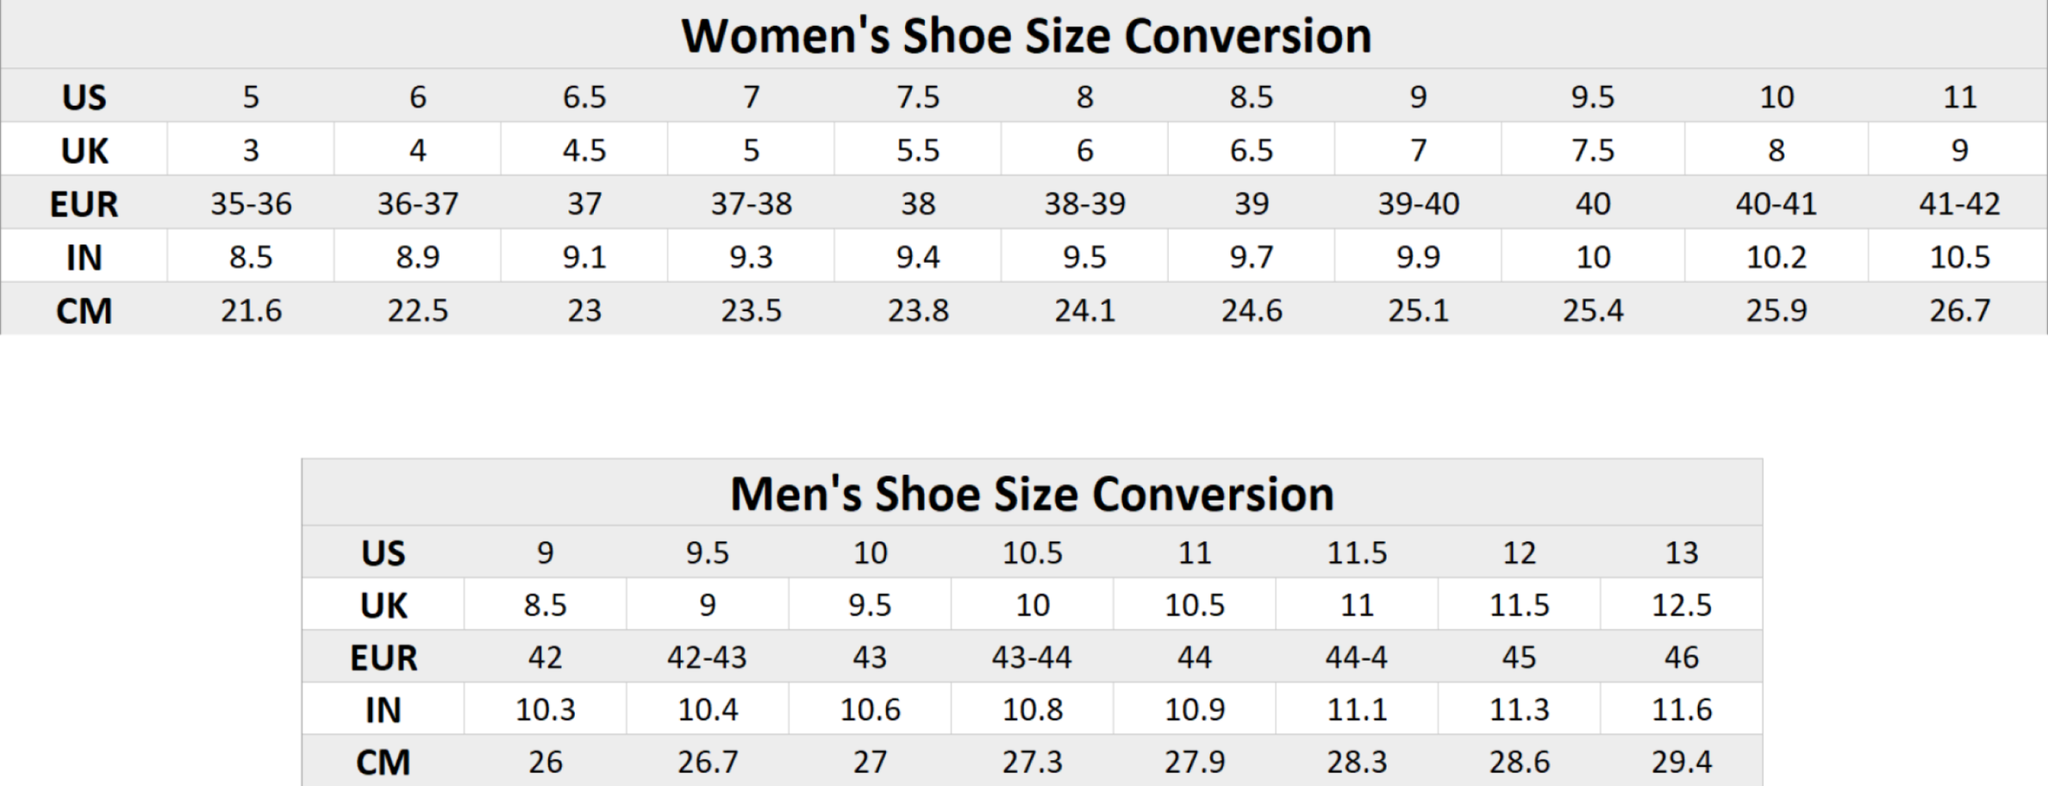 inooknit US shoe size conversion chart for men and women